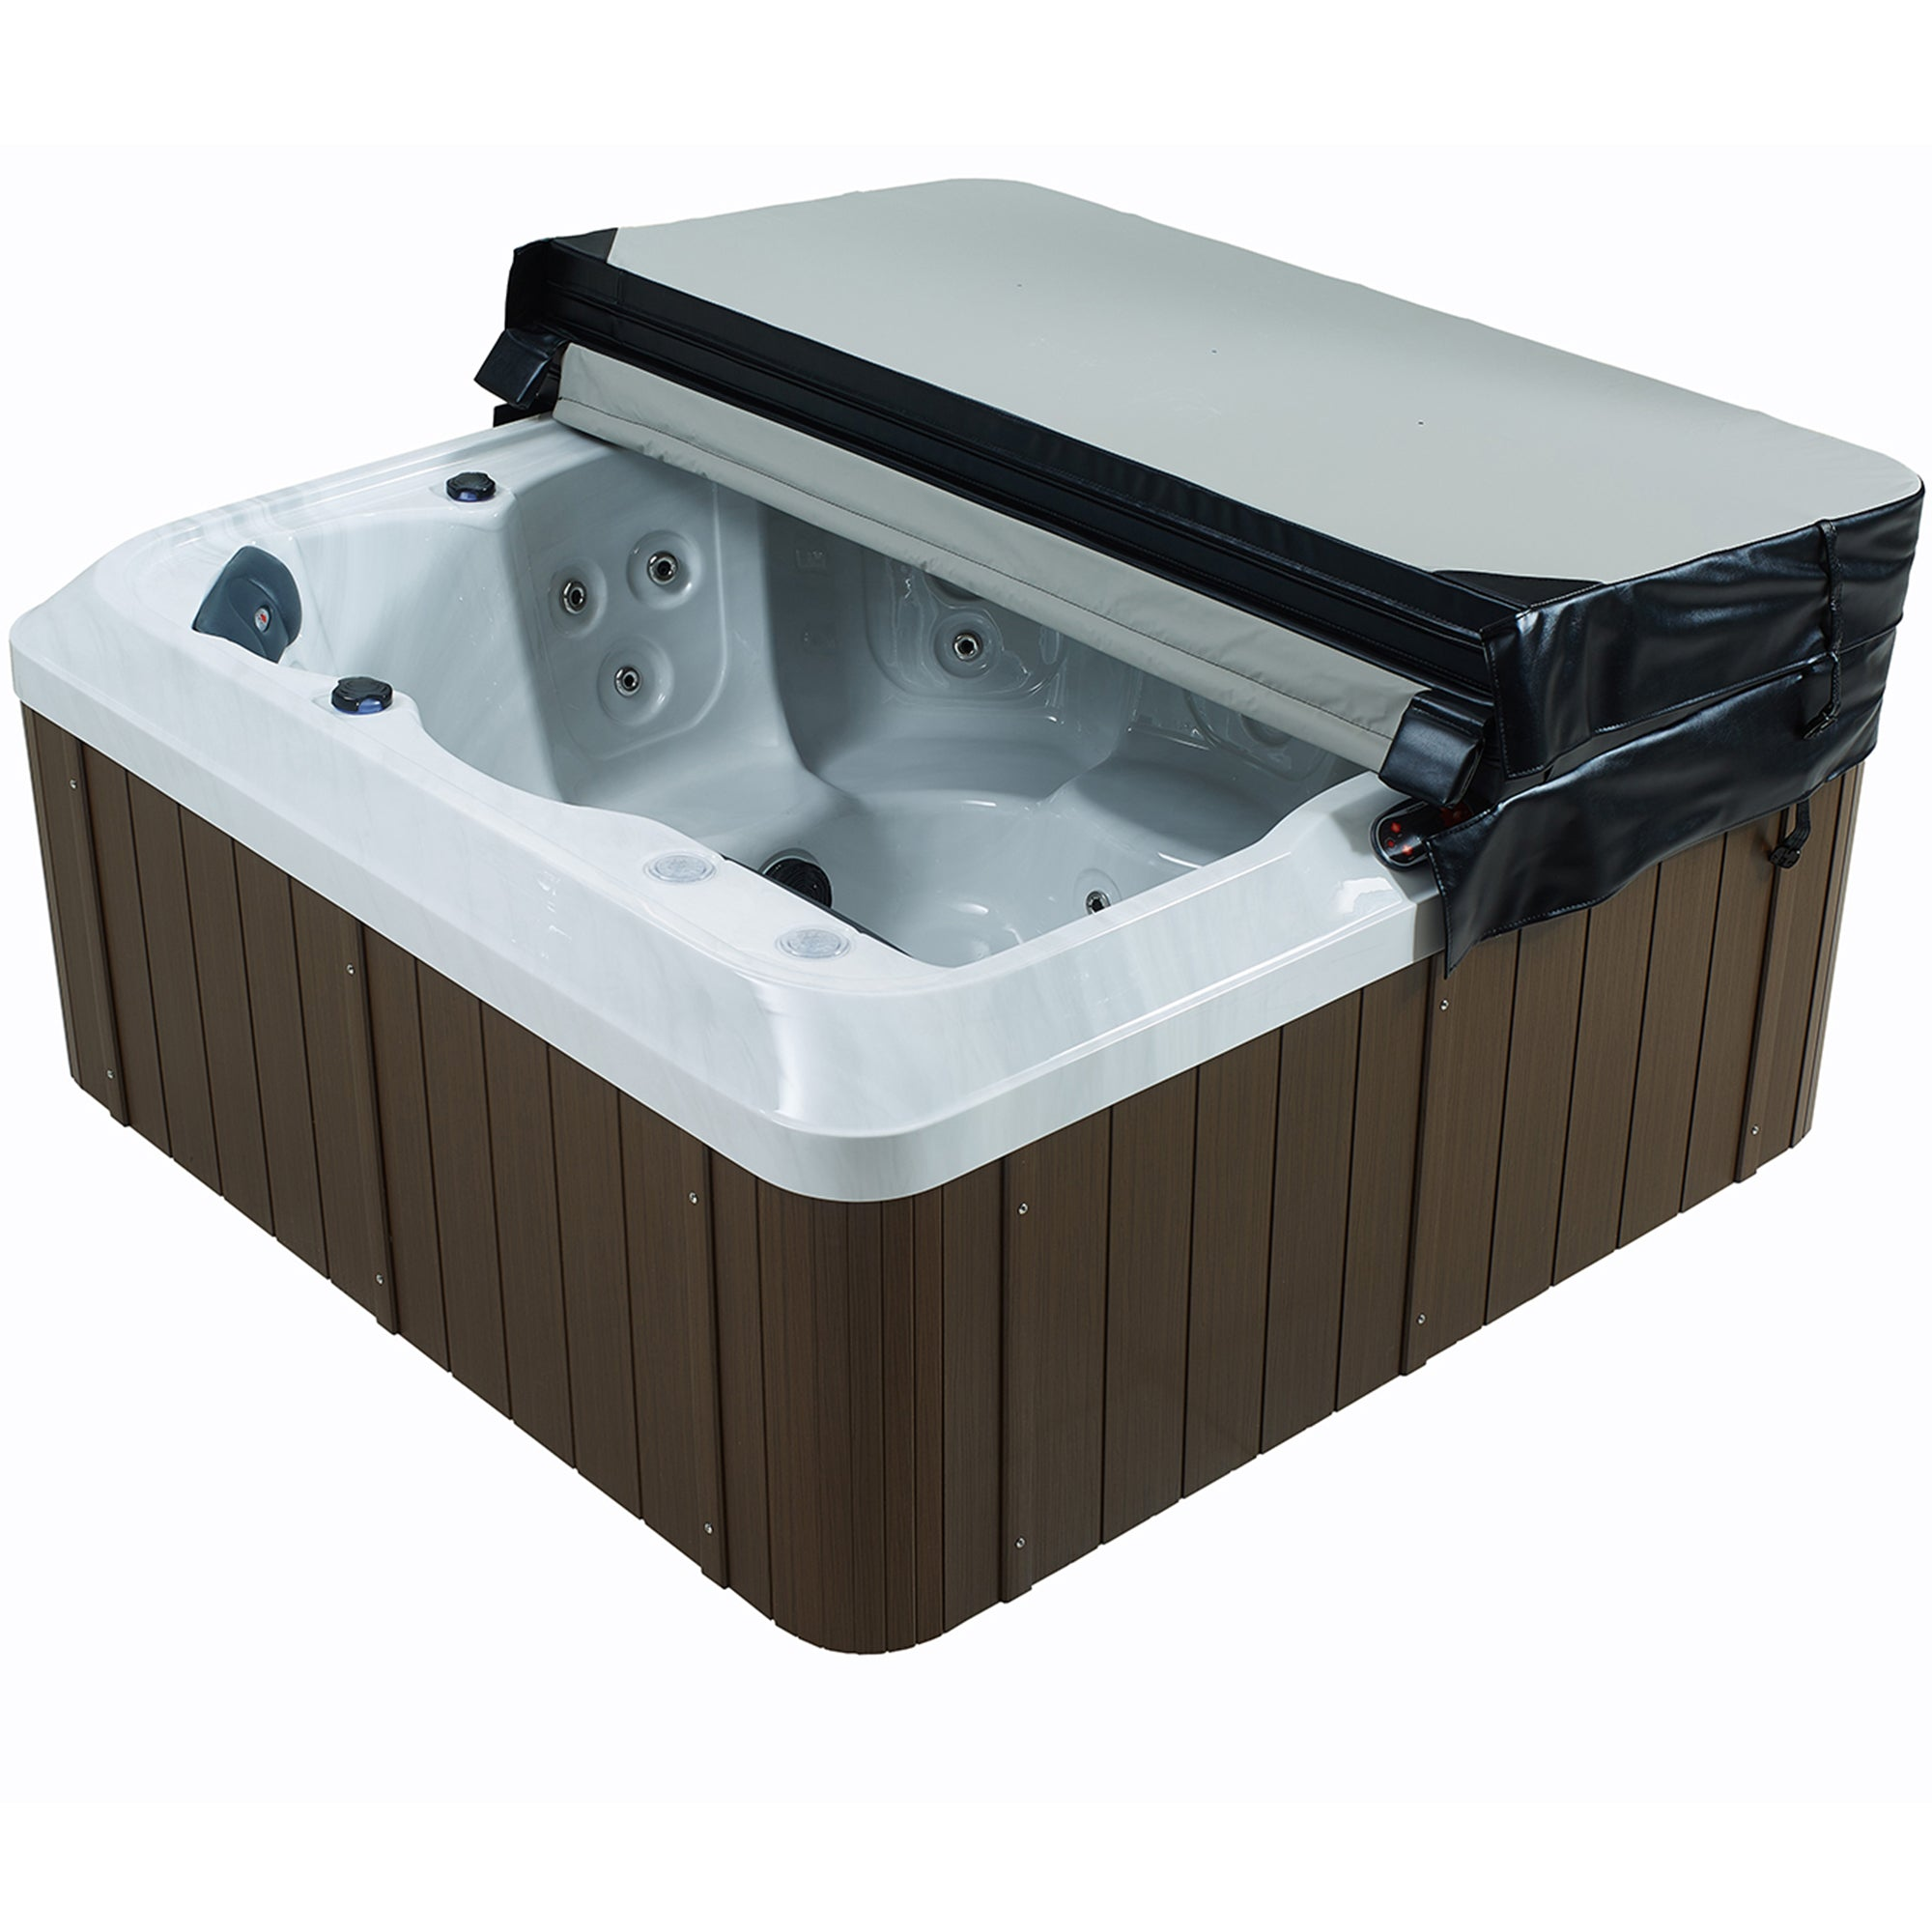 and swim hydropool spas tubbuilder tub hot accessories builder preview person tubs